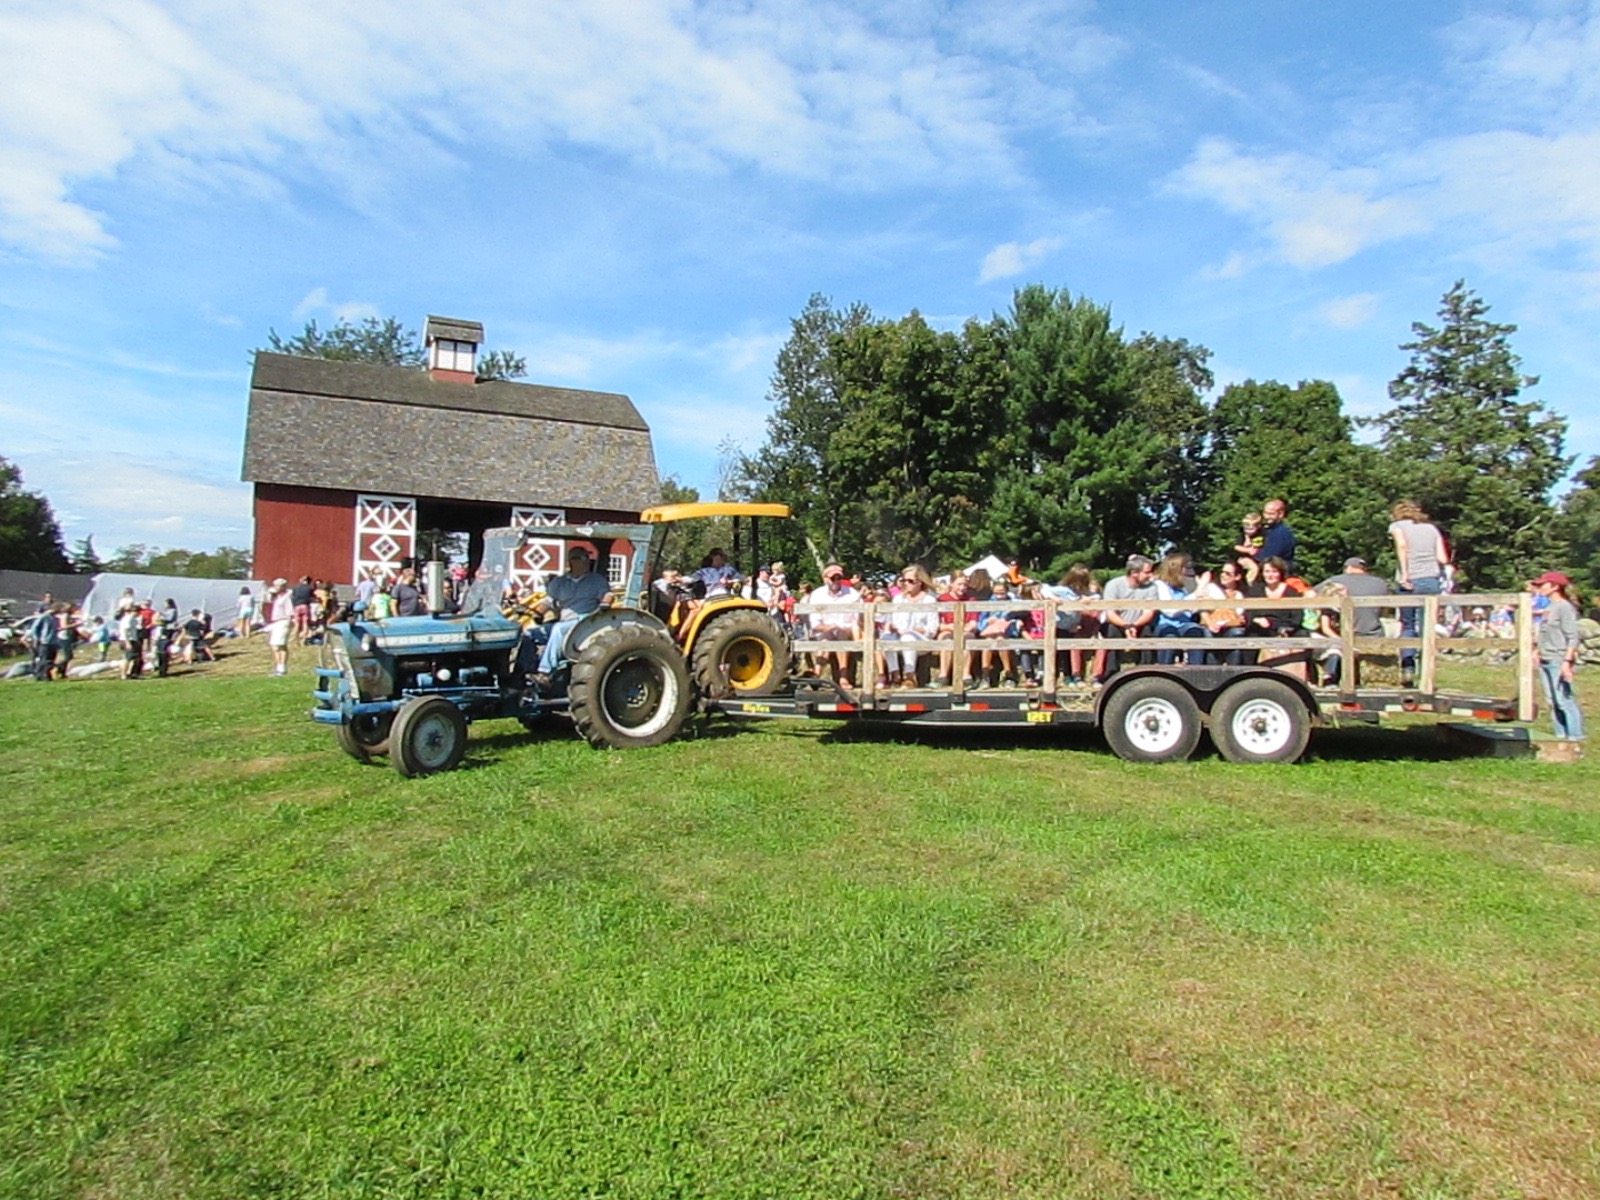 Usher in Fall at Ambler Farm Day this Weekend!